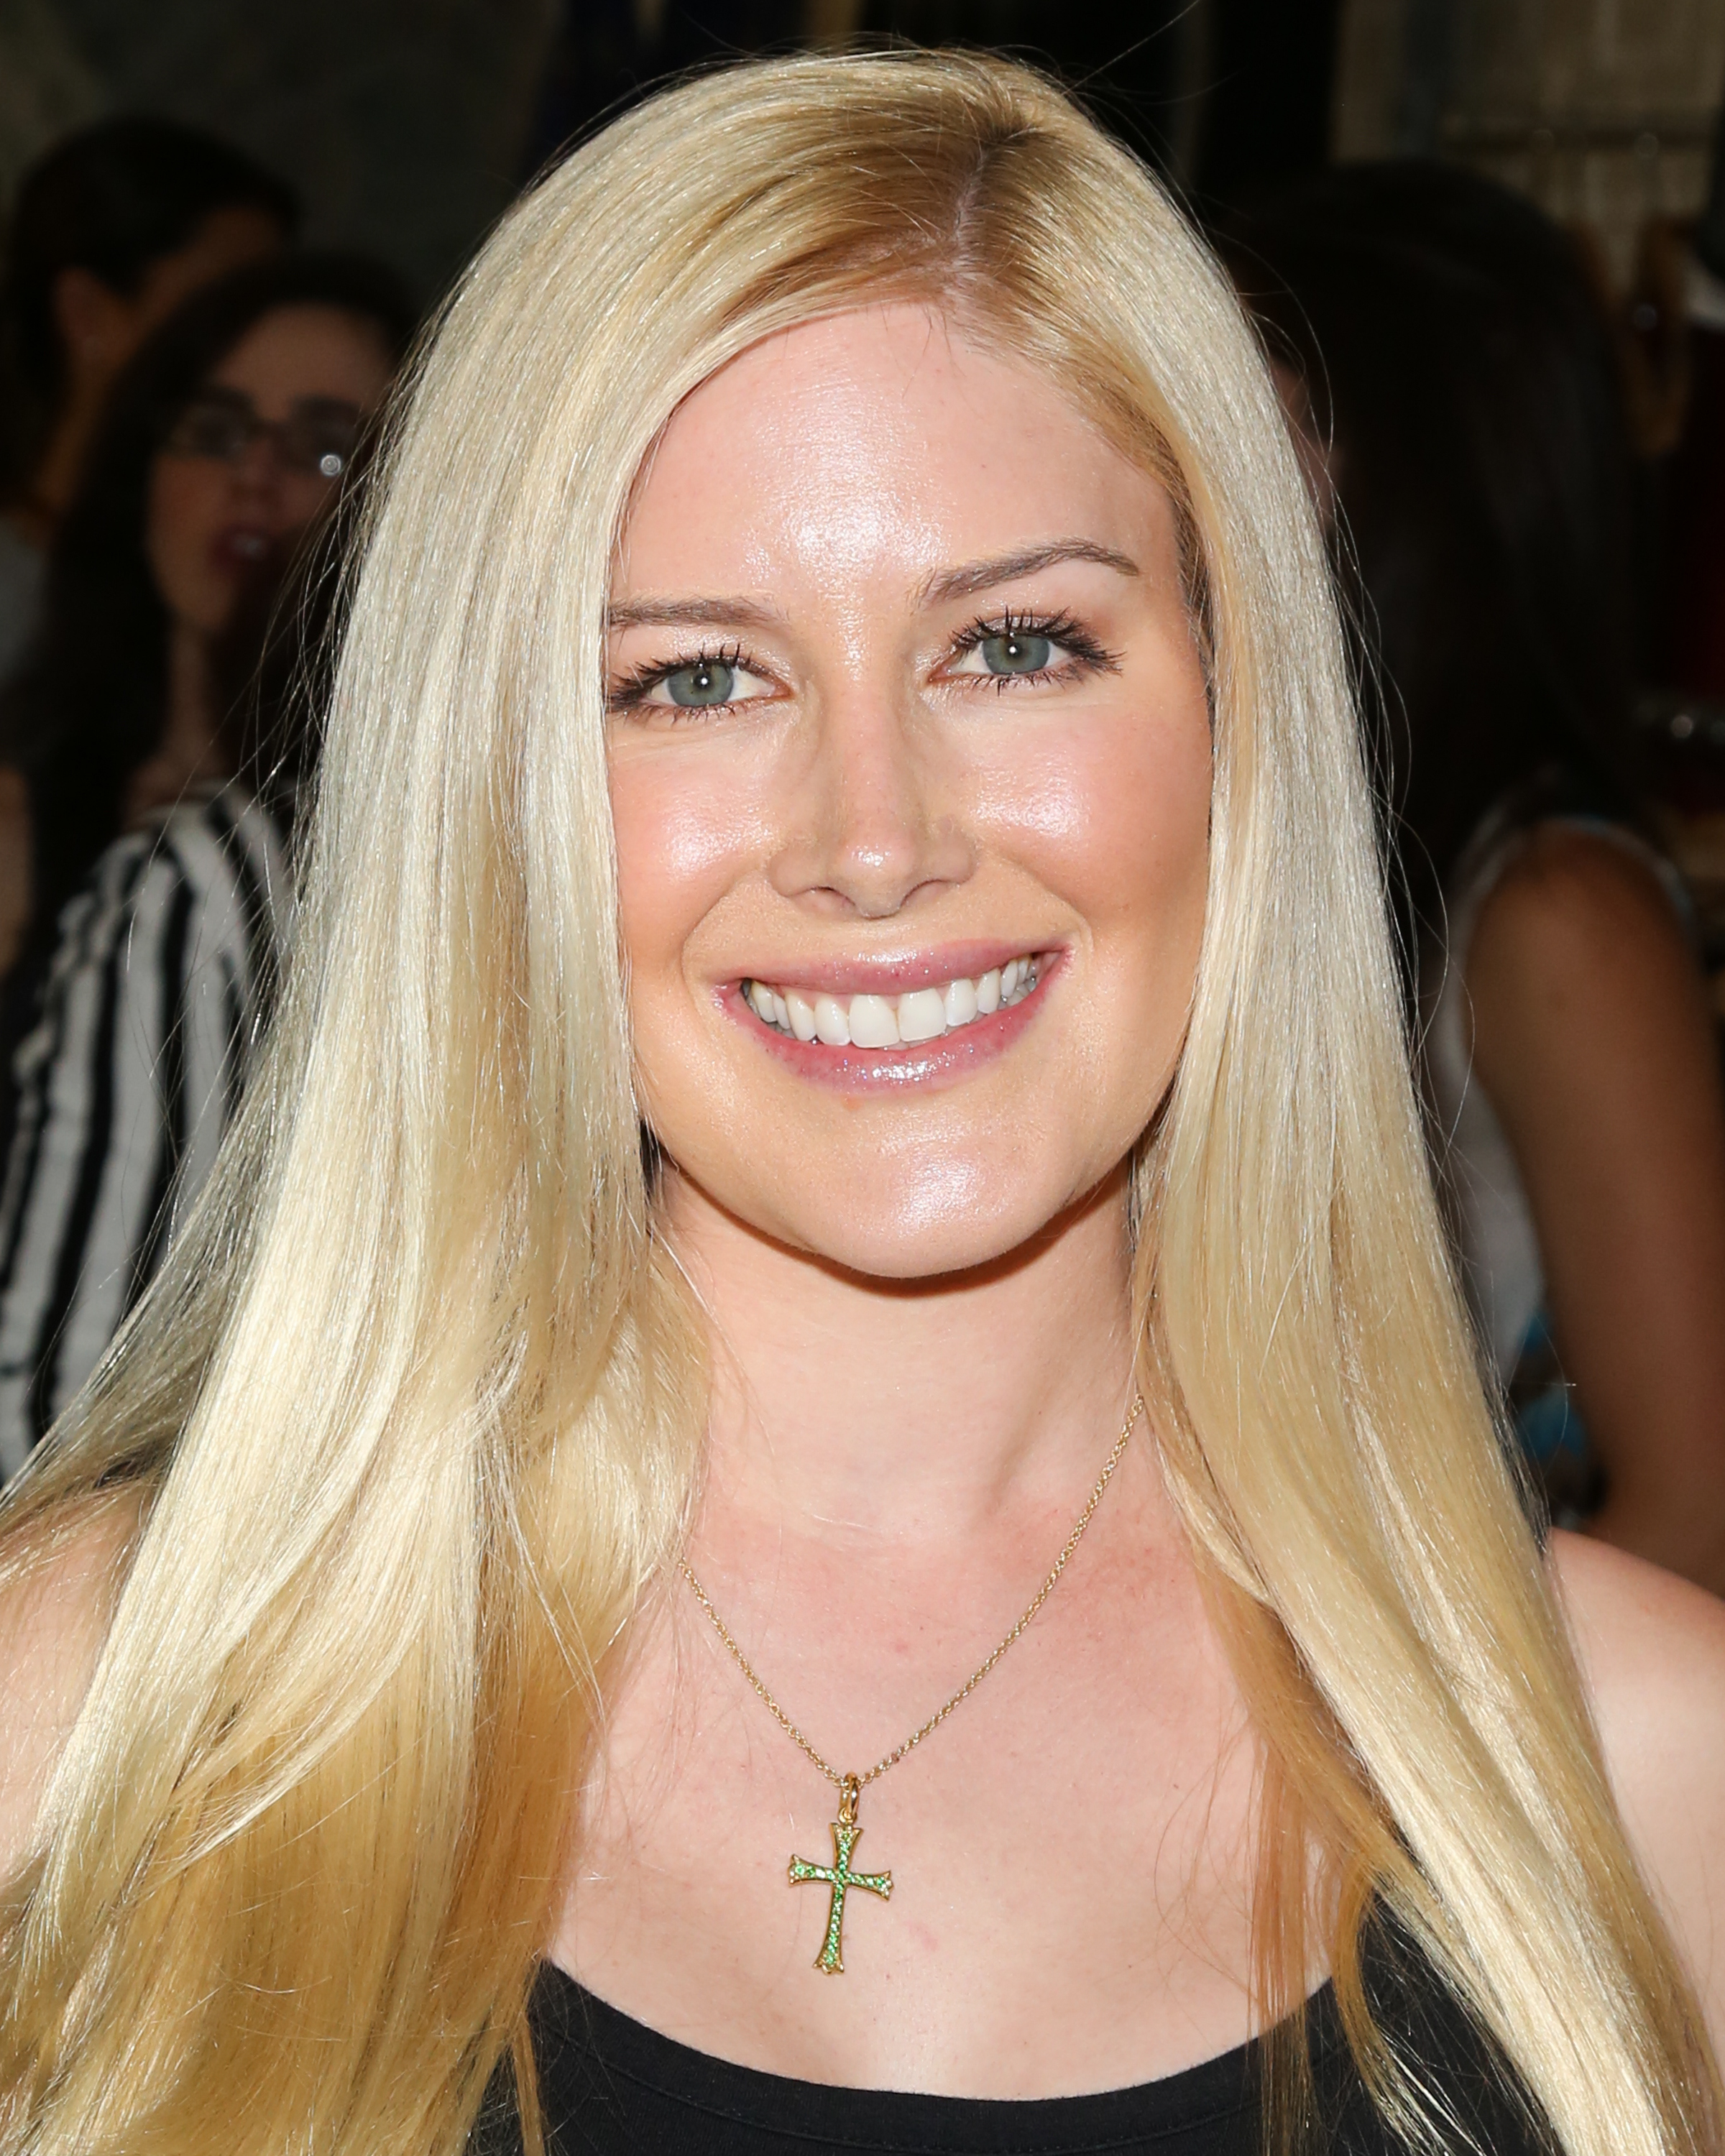 cleavage Selfie Heidi Montag naked photo 2017